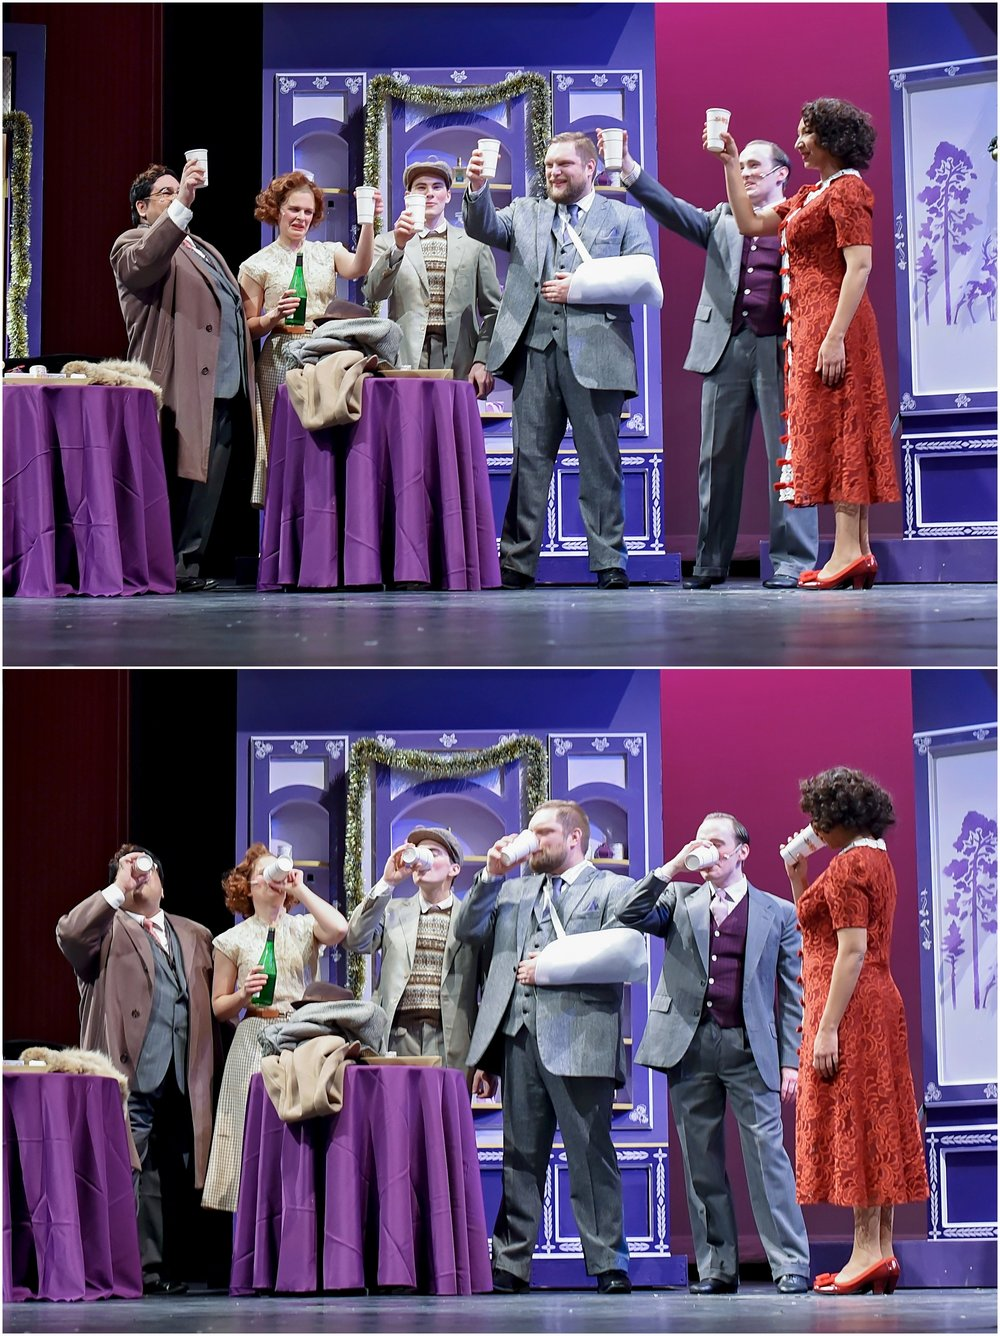 20190130_Uconn Opera_She Loves Me_1456.jpg